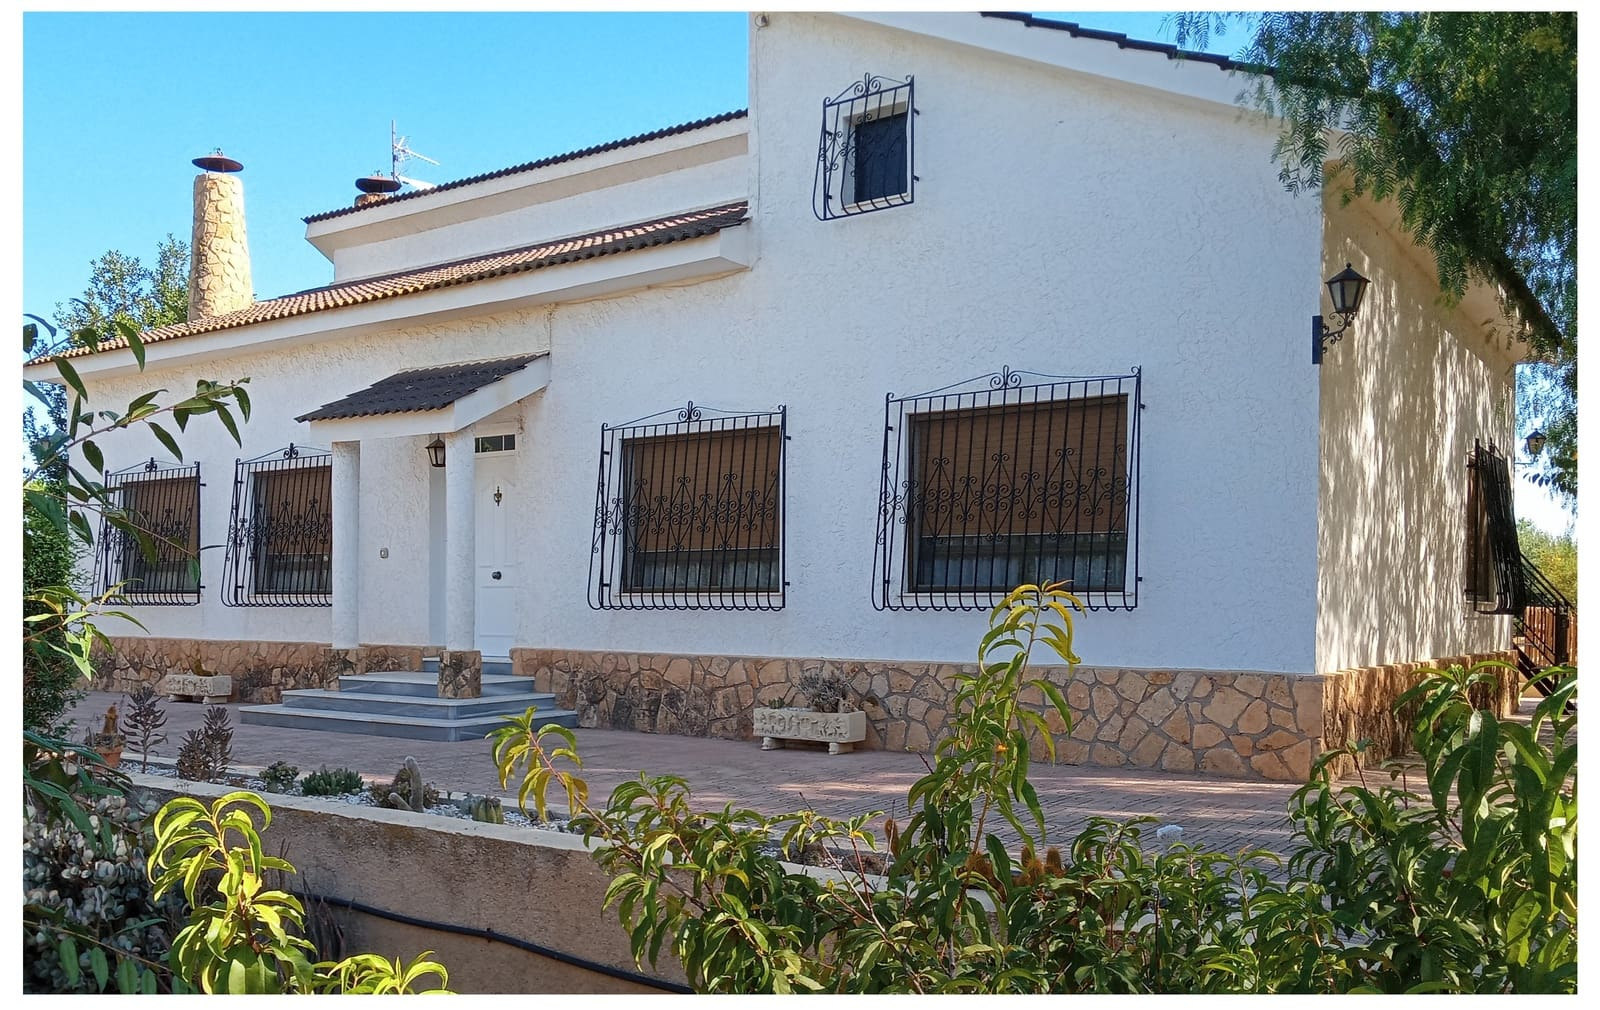 3 bedroom Finca/Country House for sale in Purias - € 329,000 (Ref: 6336237)